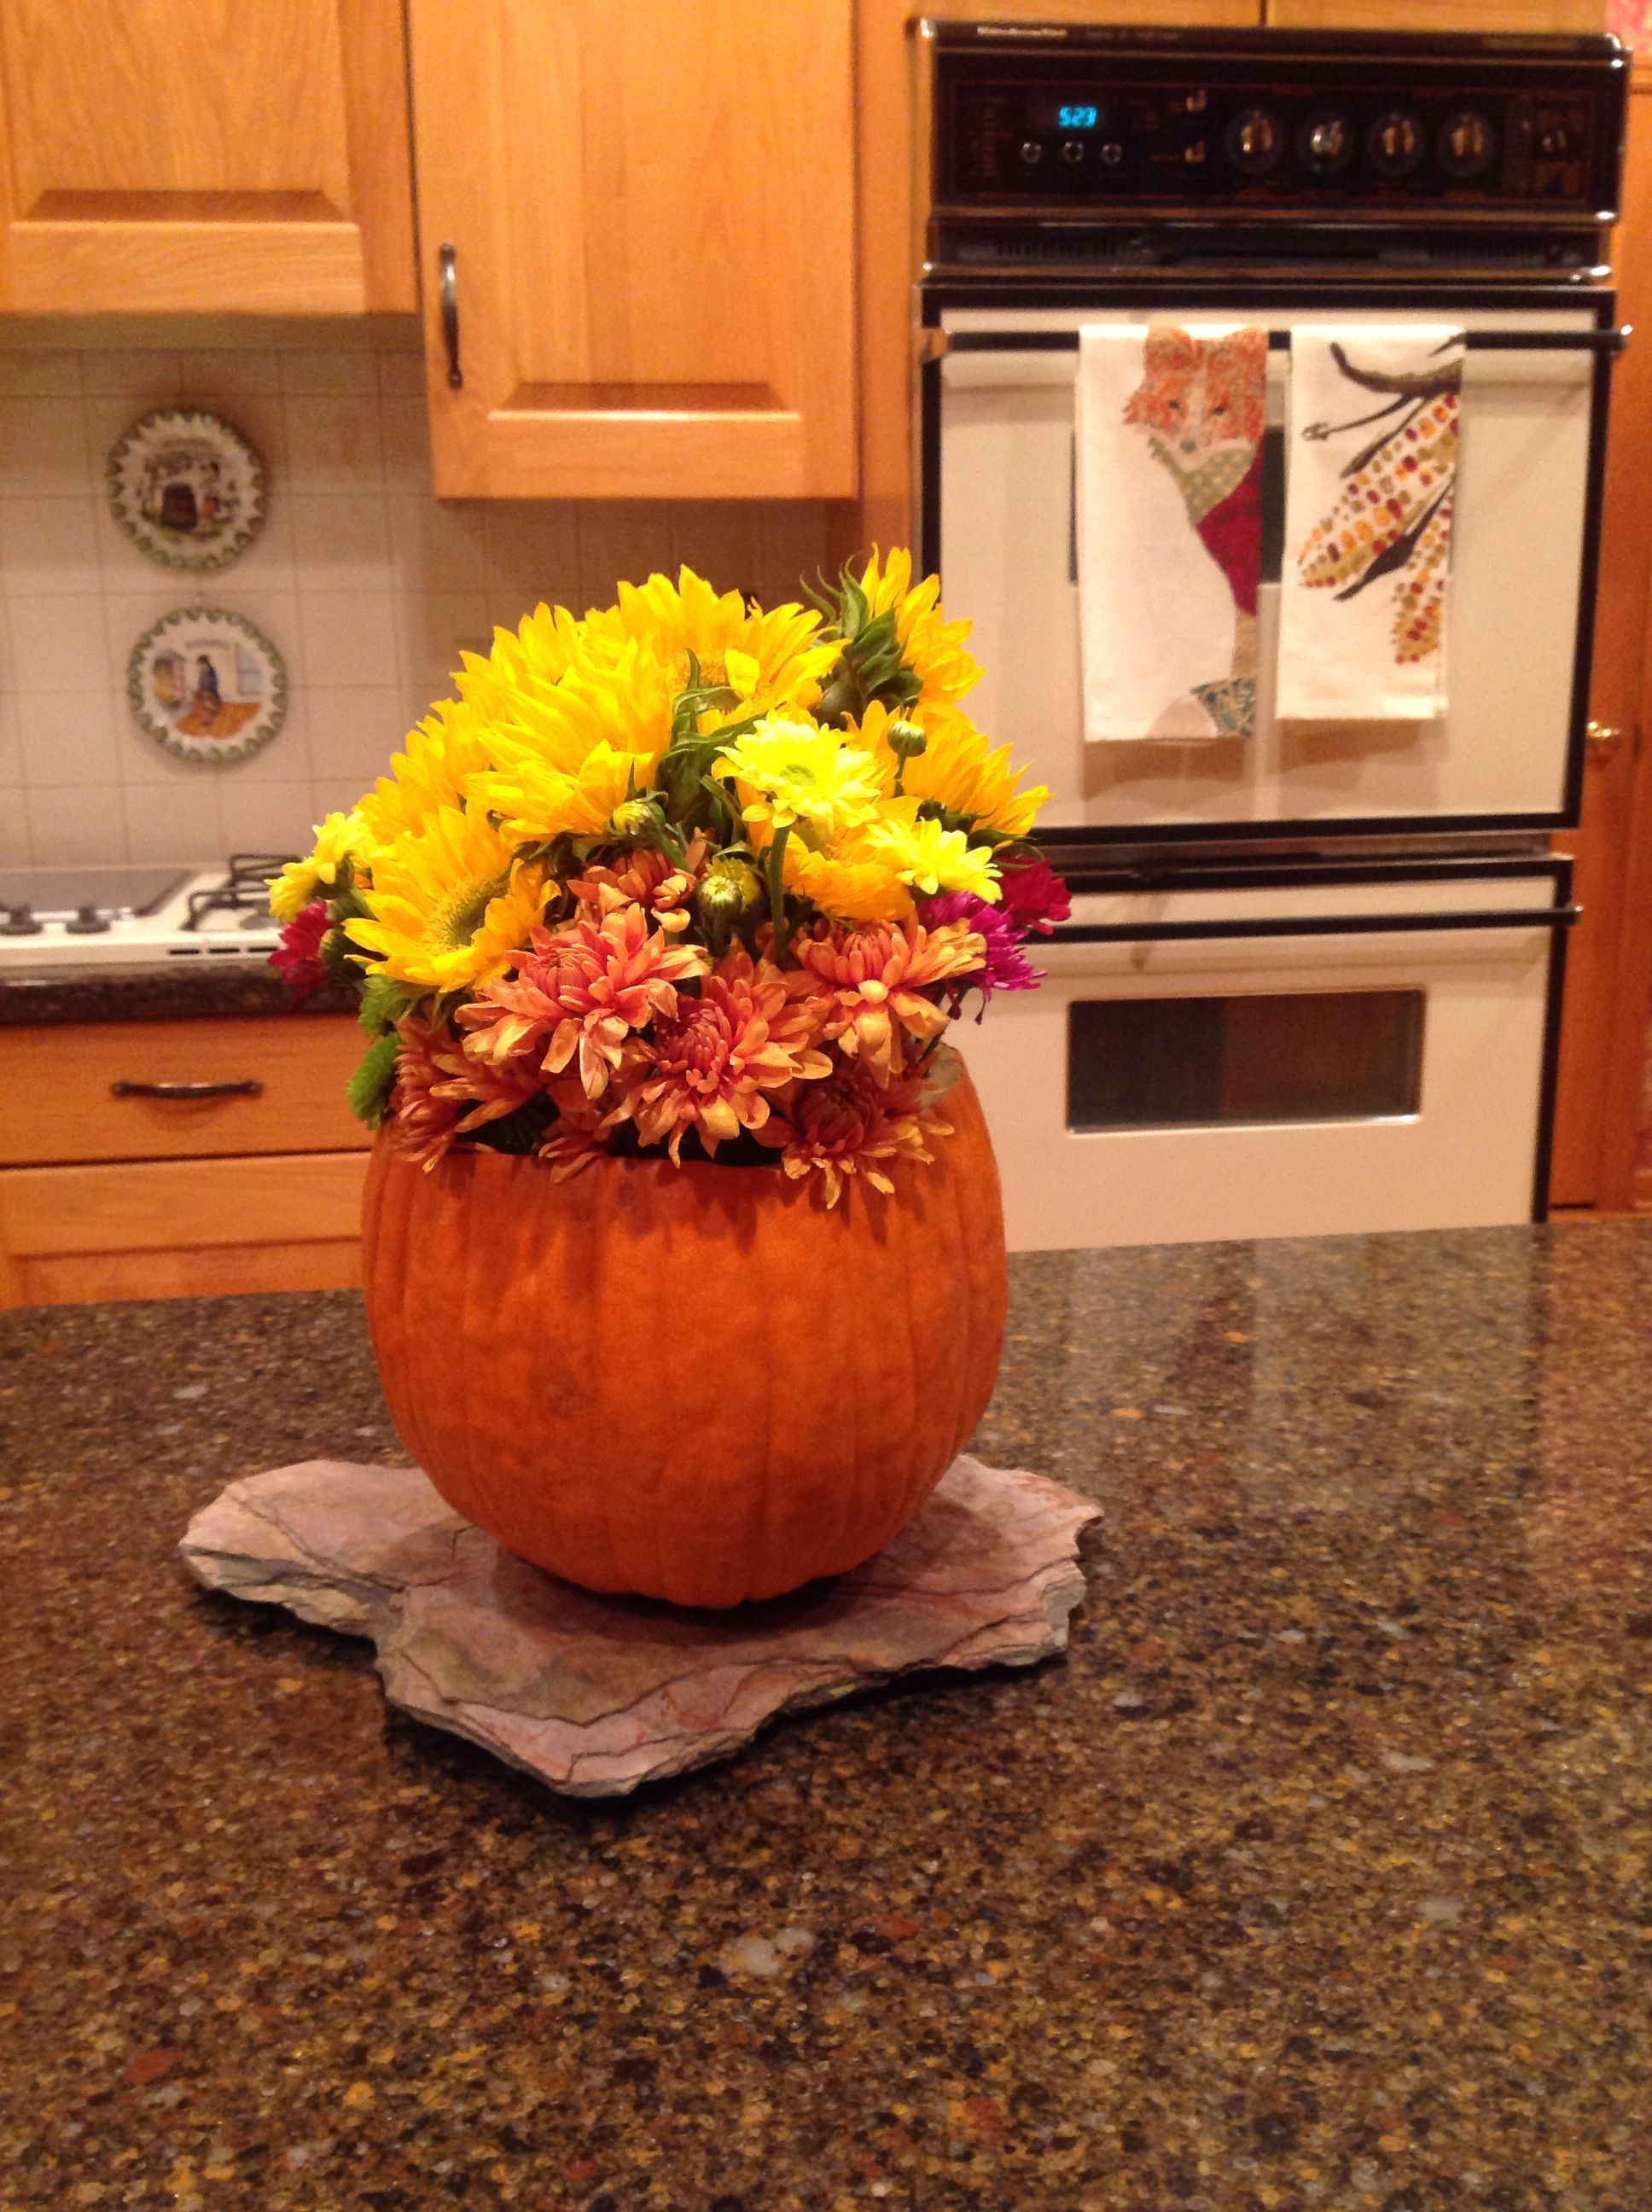 tall skinny vases for centerpieces of 27 fresh plastic floral liners shower curtains ideas design inside i cleaned out the inside if the pumpkin then put a vase inside a plastic